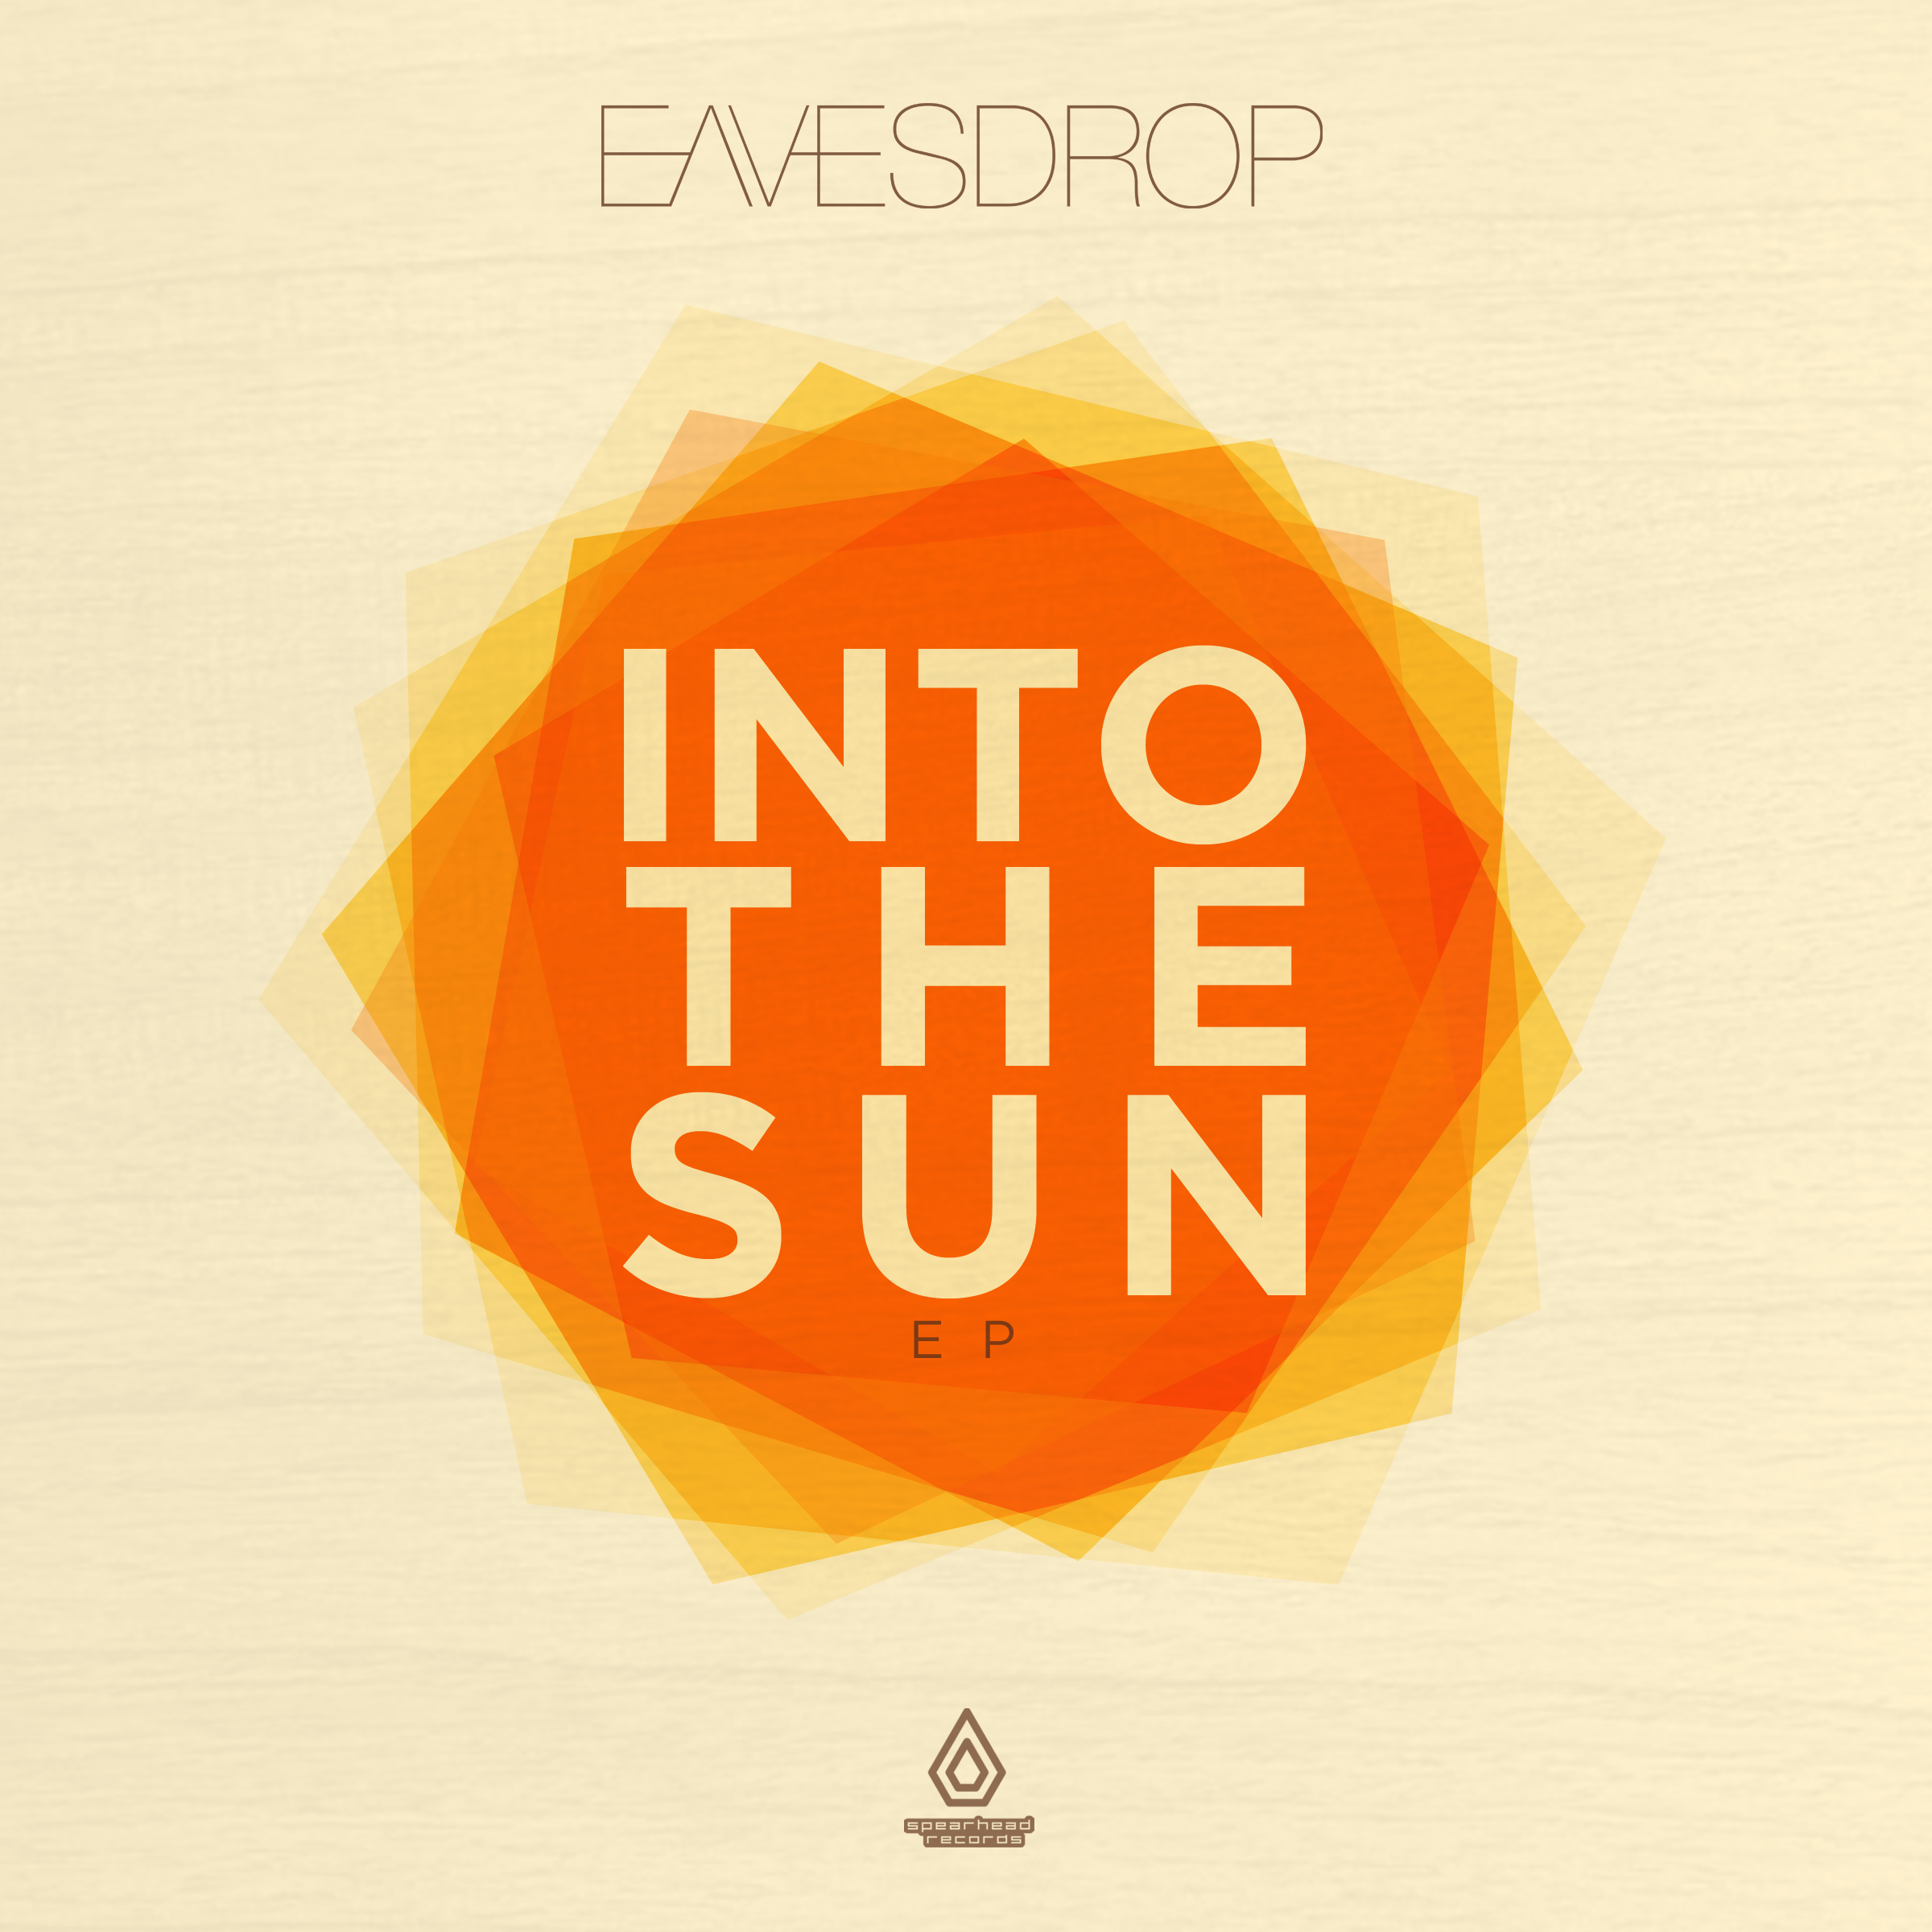 Eavesdrop/INTO THE SUN EP 12""